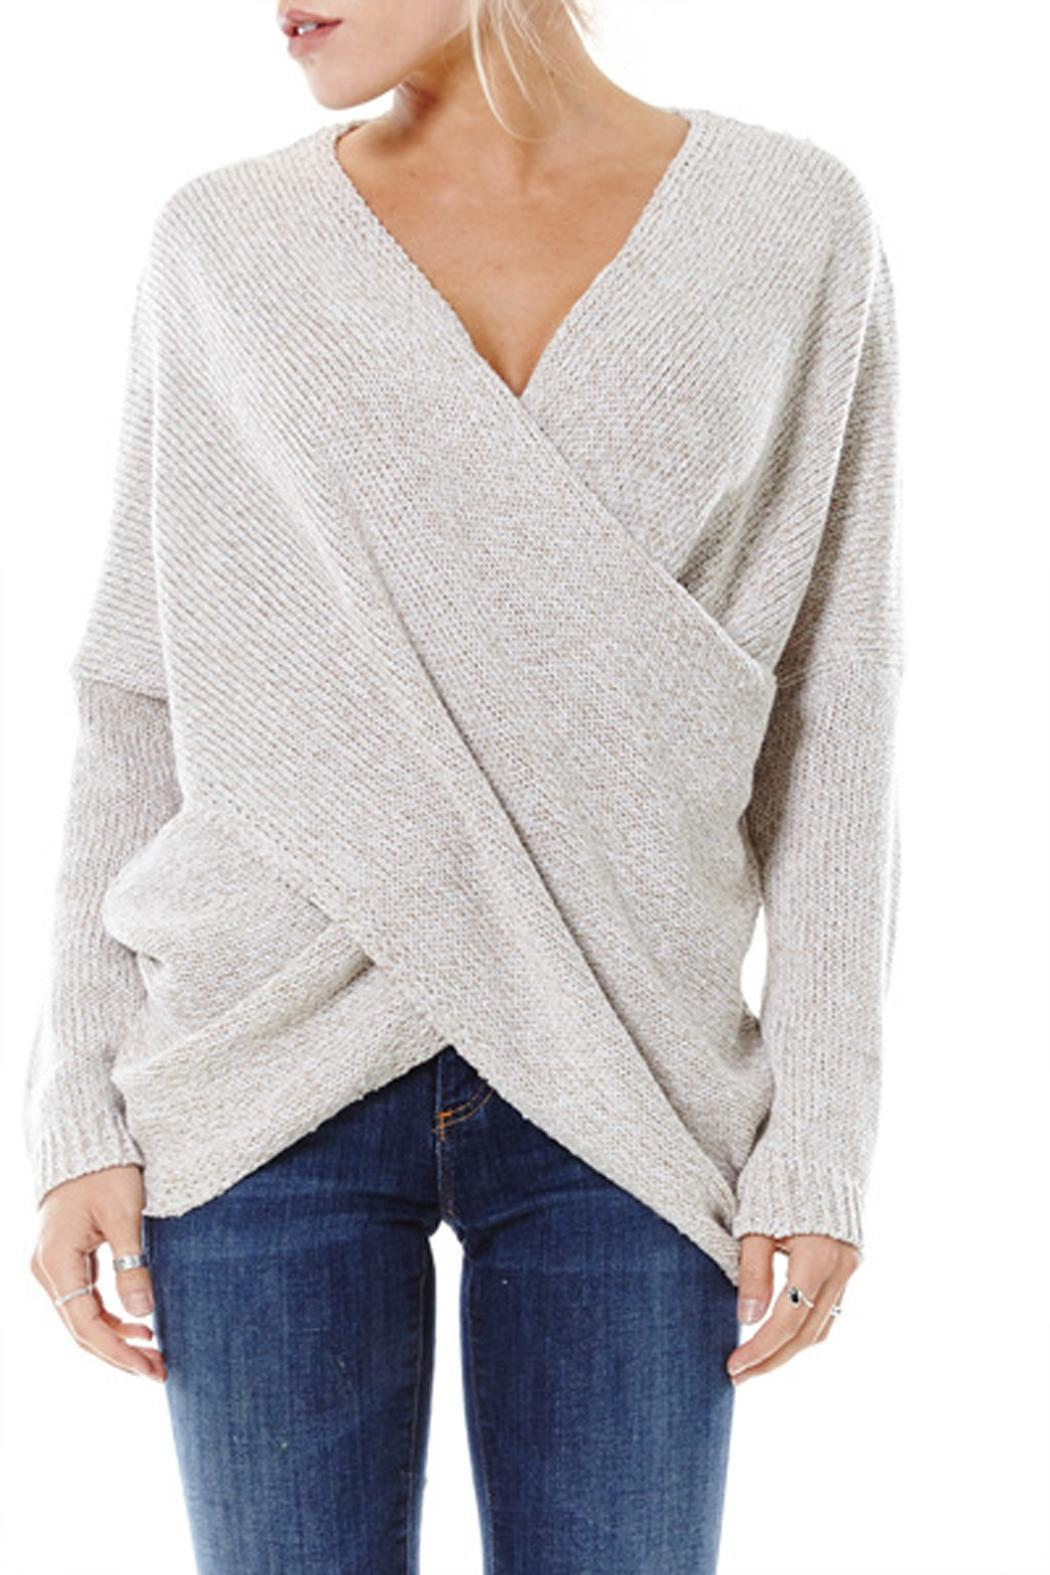 grey gallery draped clothing sweater product gray drapes in gucci normal lyst